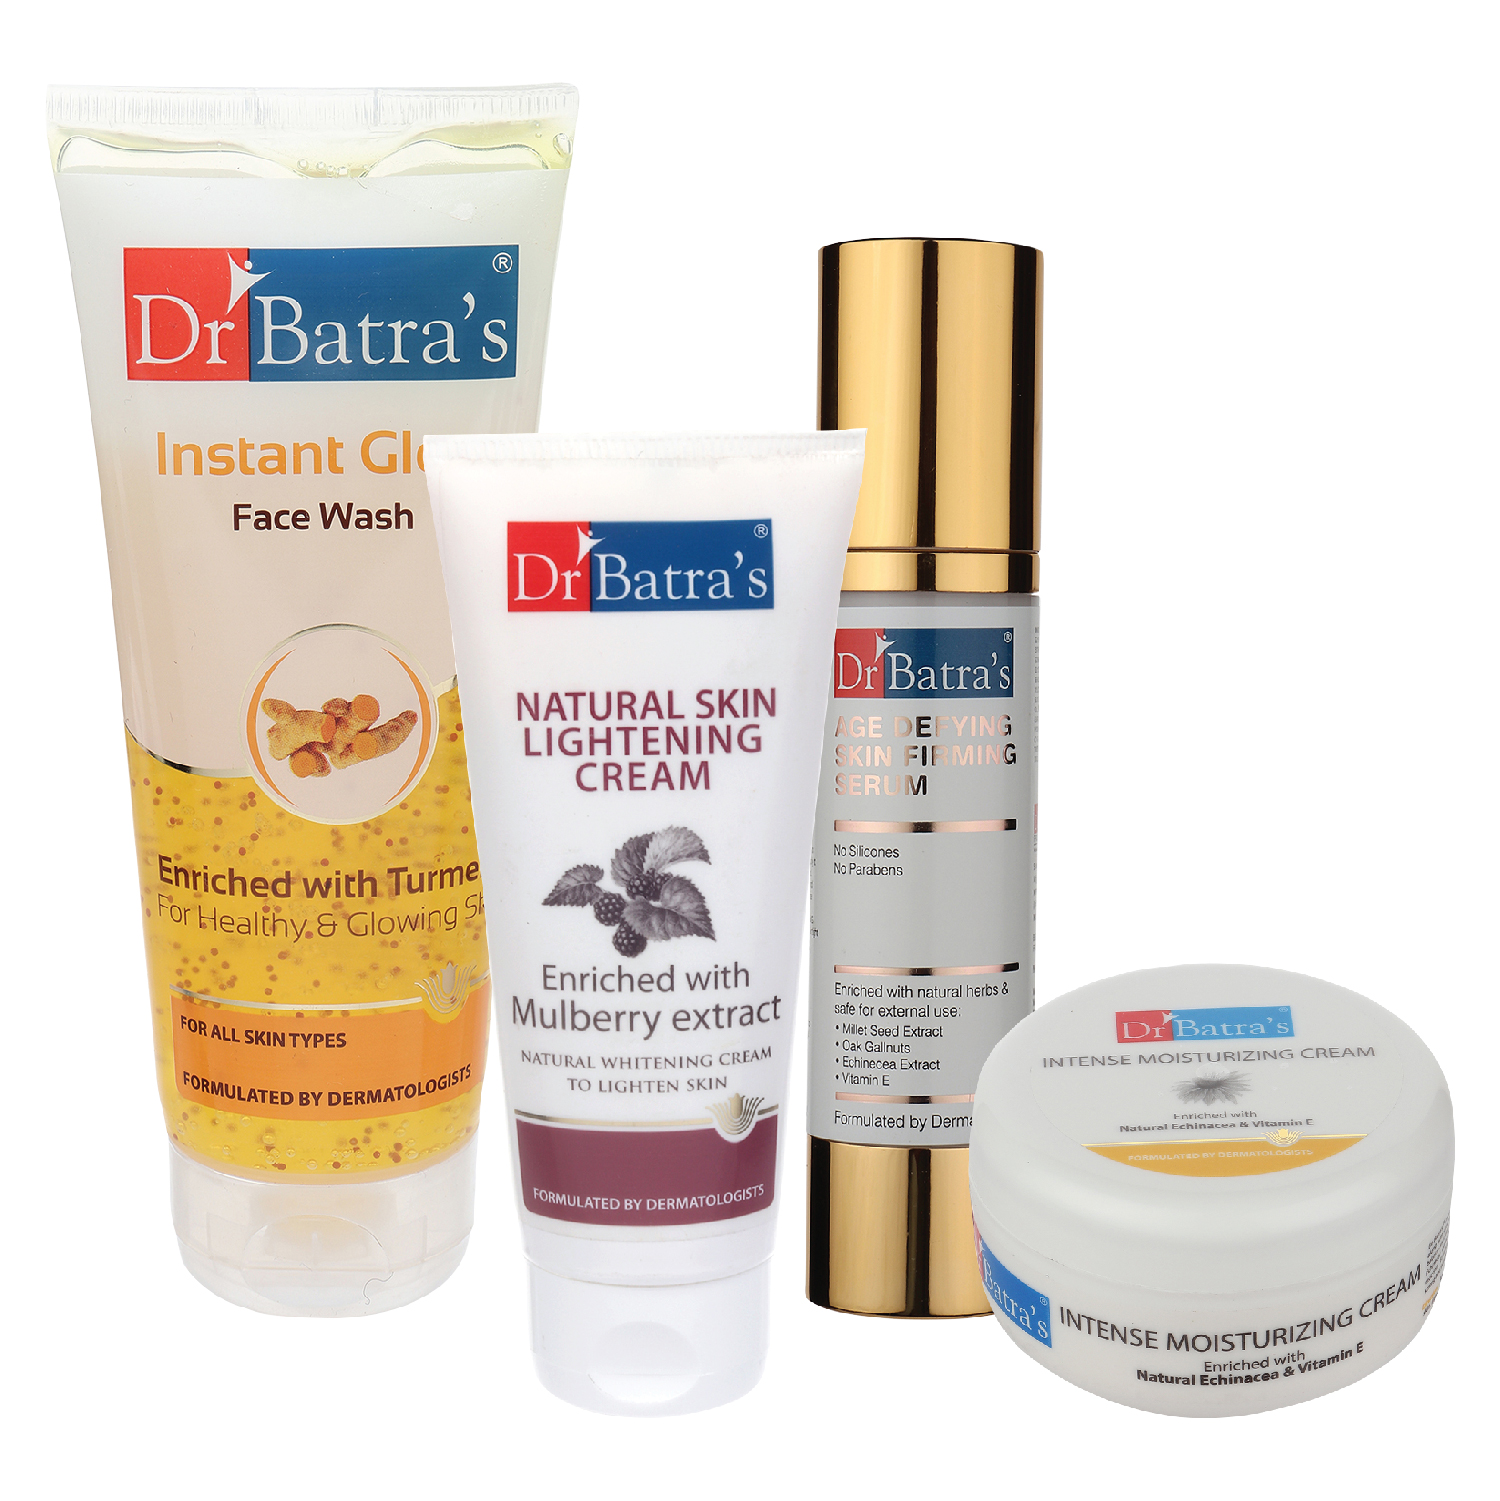 Dr Batra's | Dr Batra's Age Defying Skin Firming Serum - 50 G, Face Wash Instant Glow - 200 gm, Natural Skin Lightening Cream - 100 gm and Intense Moisturizing Cream -100 G (Pack of 4)